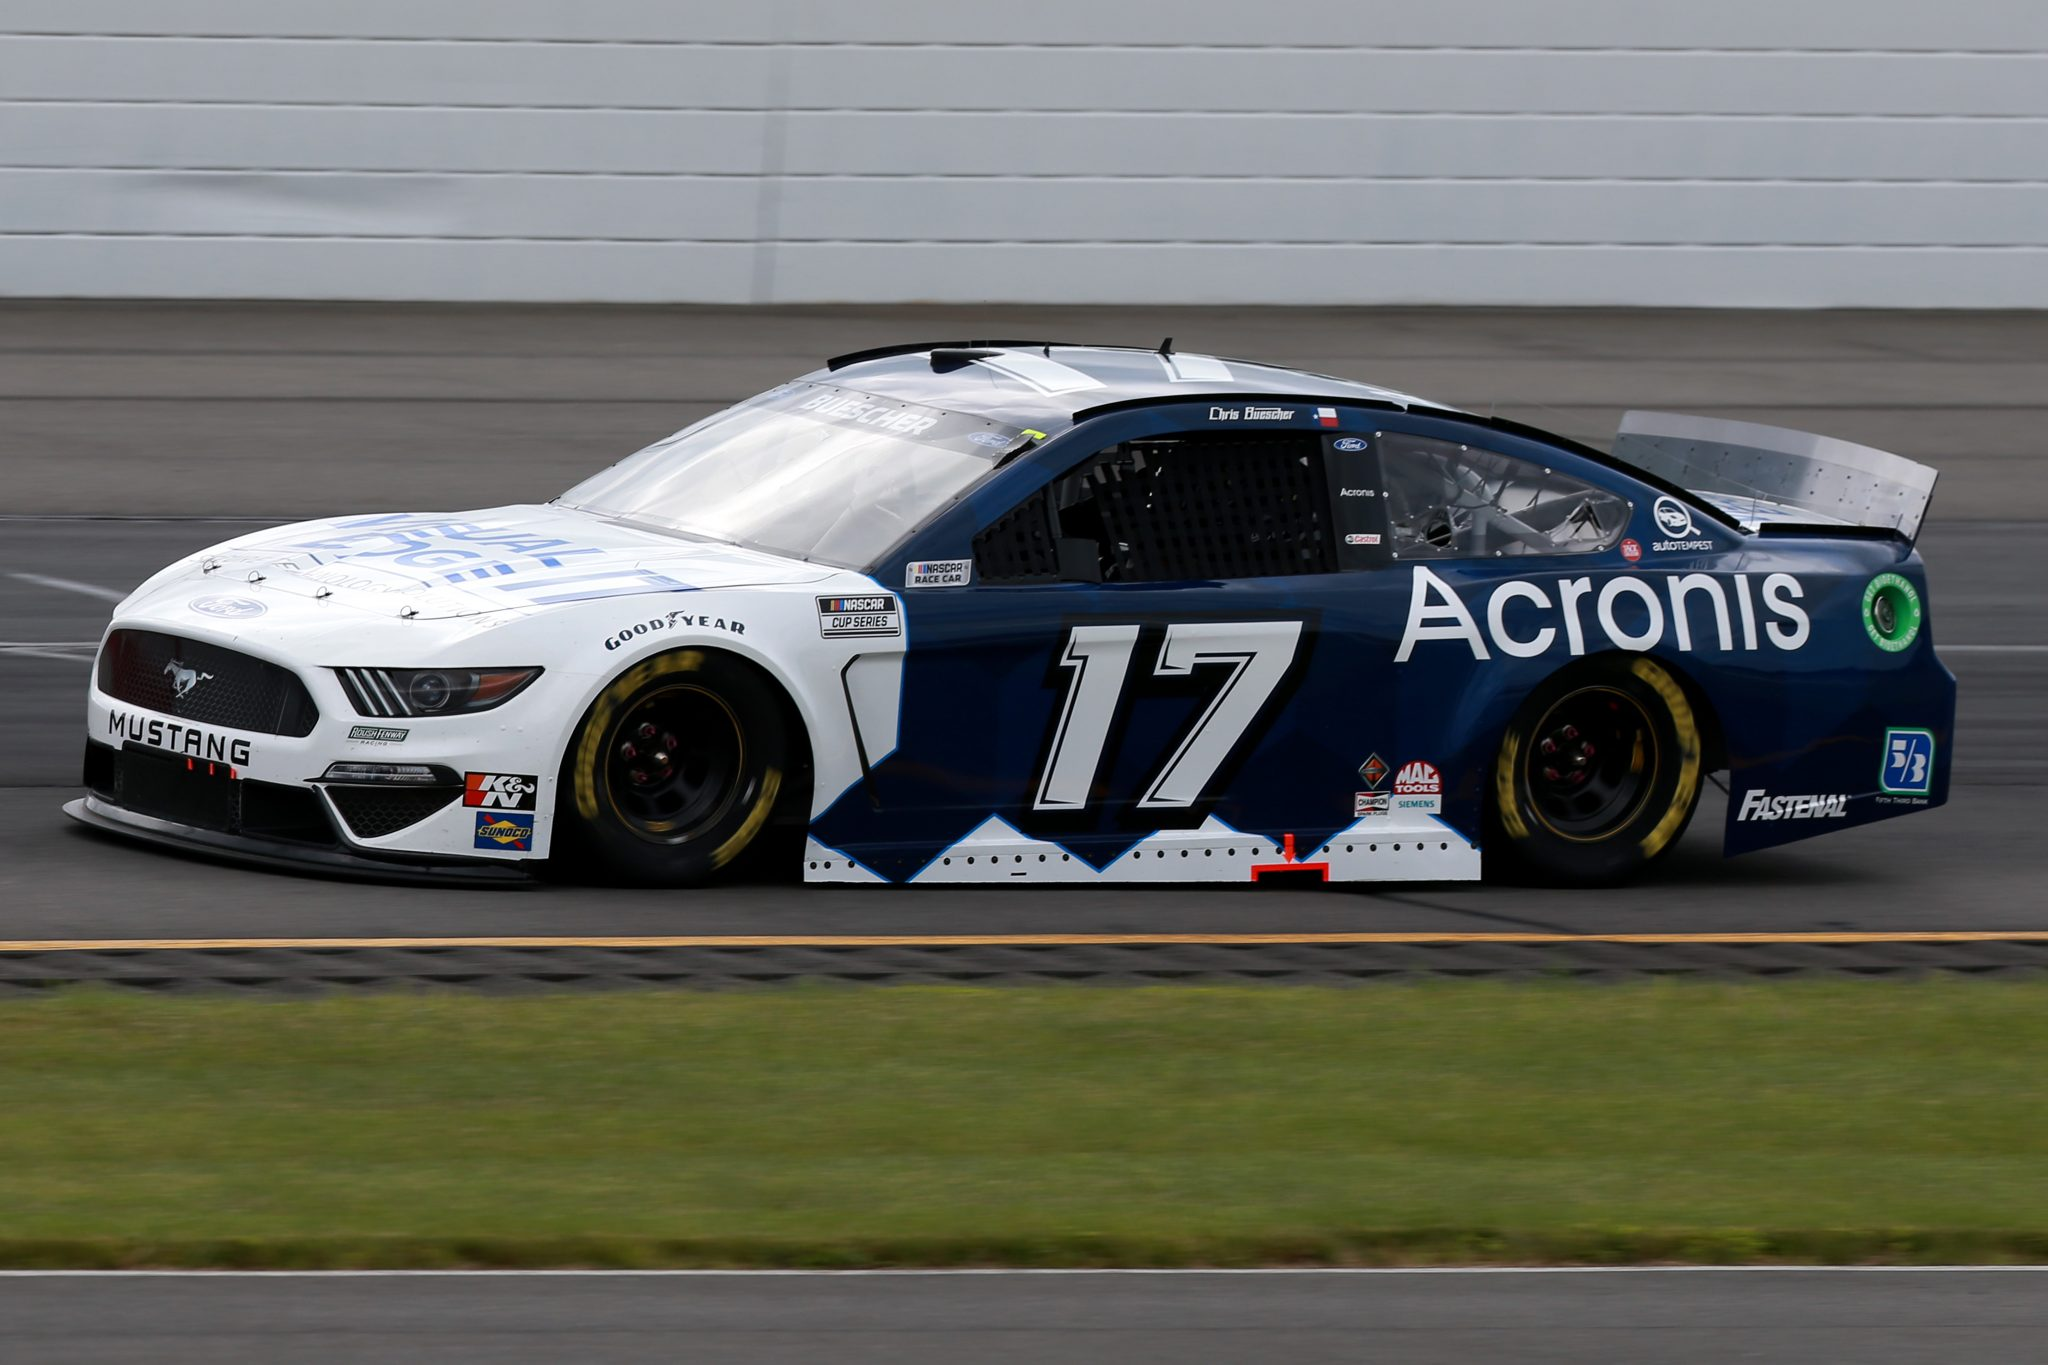 LONG POND, PENNSYLVANIA - JUNE 26: Chris Buescher, driver of the #17 Acronis Ford, drives during the NASCAR Cup Series Pocono Organics CBD 325 at Pocono Raceway on June 26, 2021 in Long Pond, Pennsylvania. (Photo by Sean Gardner/Getty Images) | Getty Images